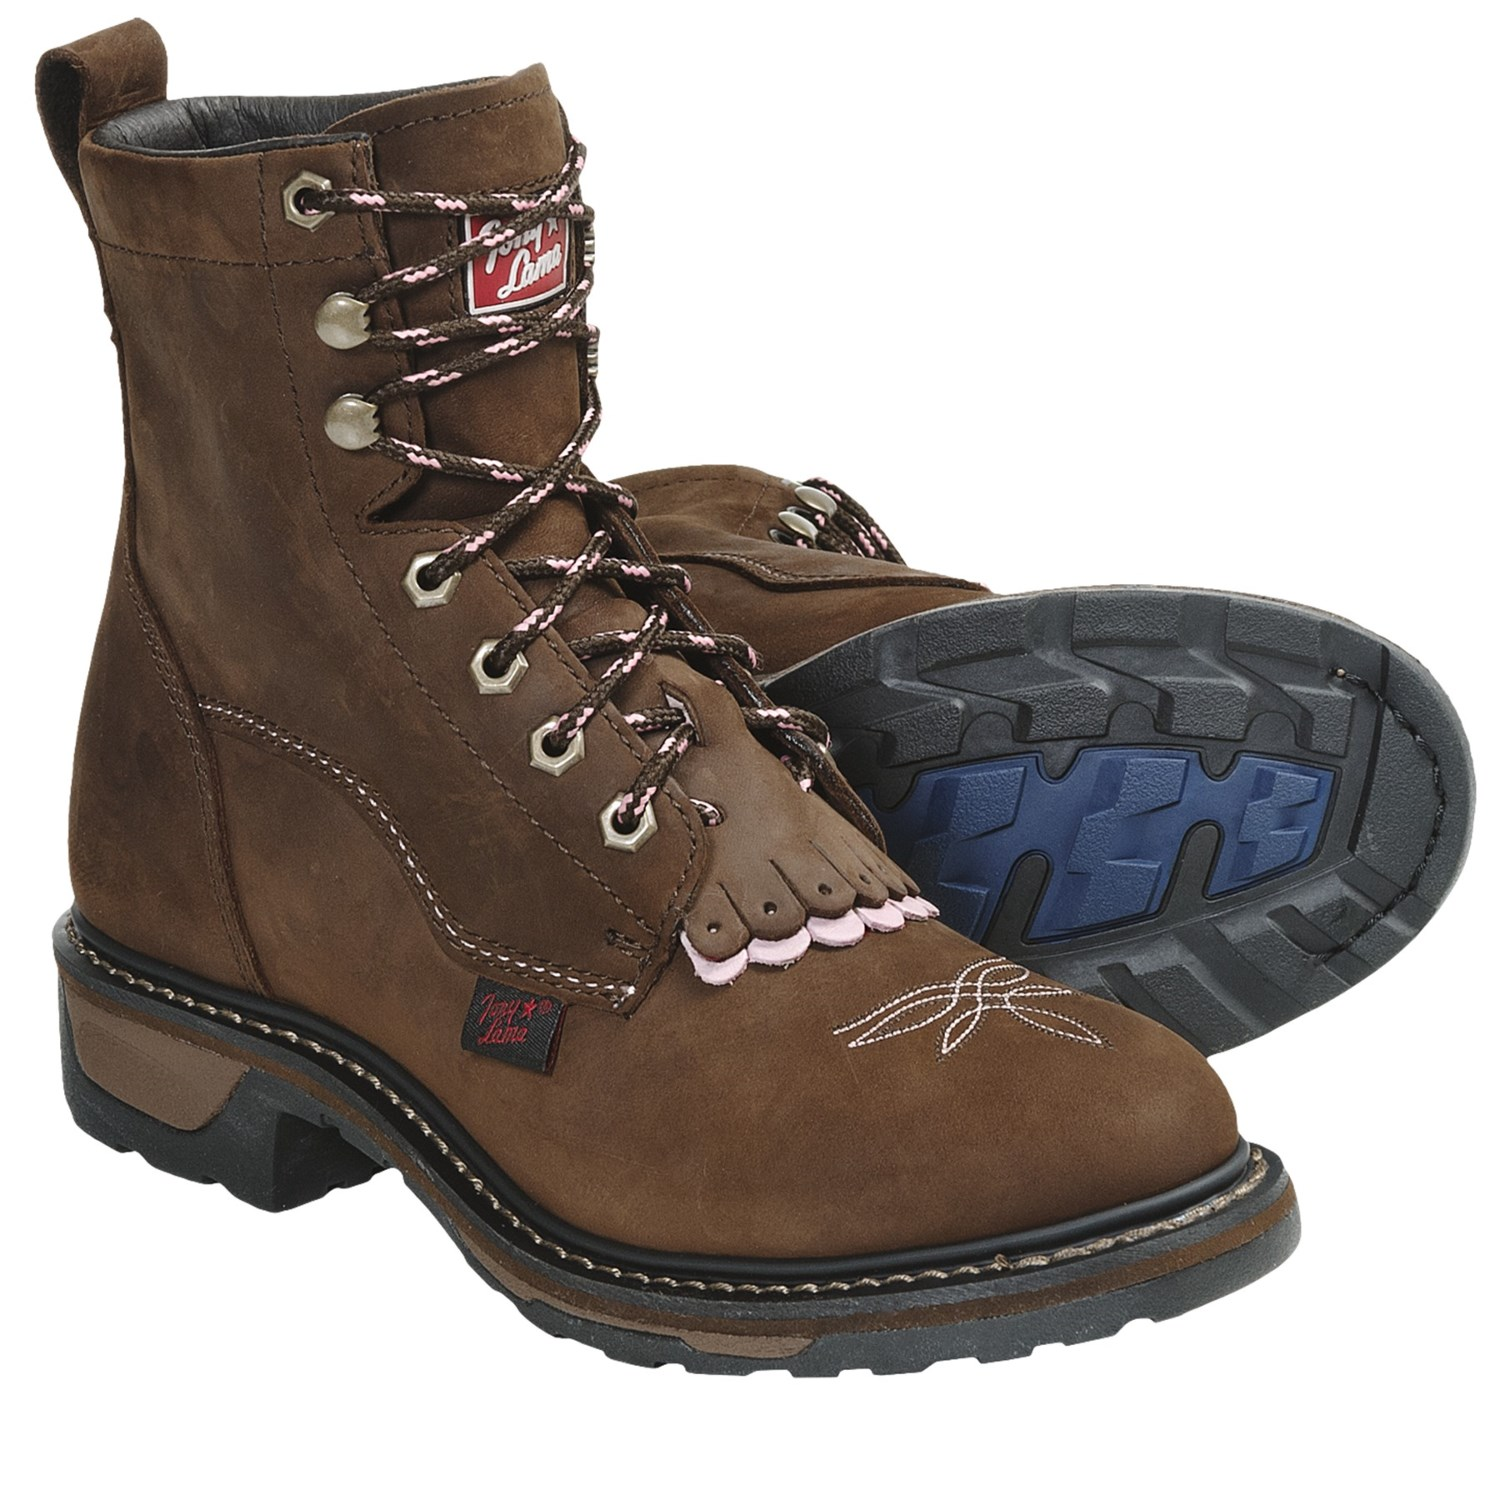 Western Work Boots Nubuck Ls Toe For Women Click Details